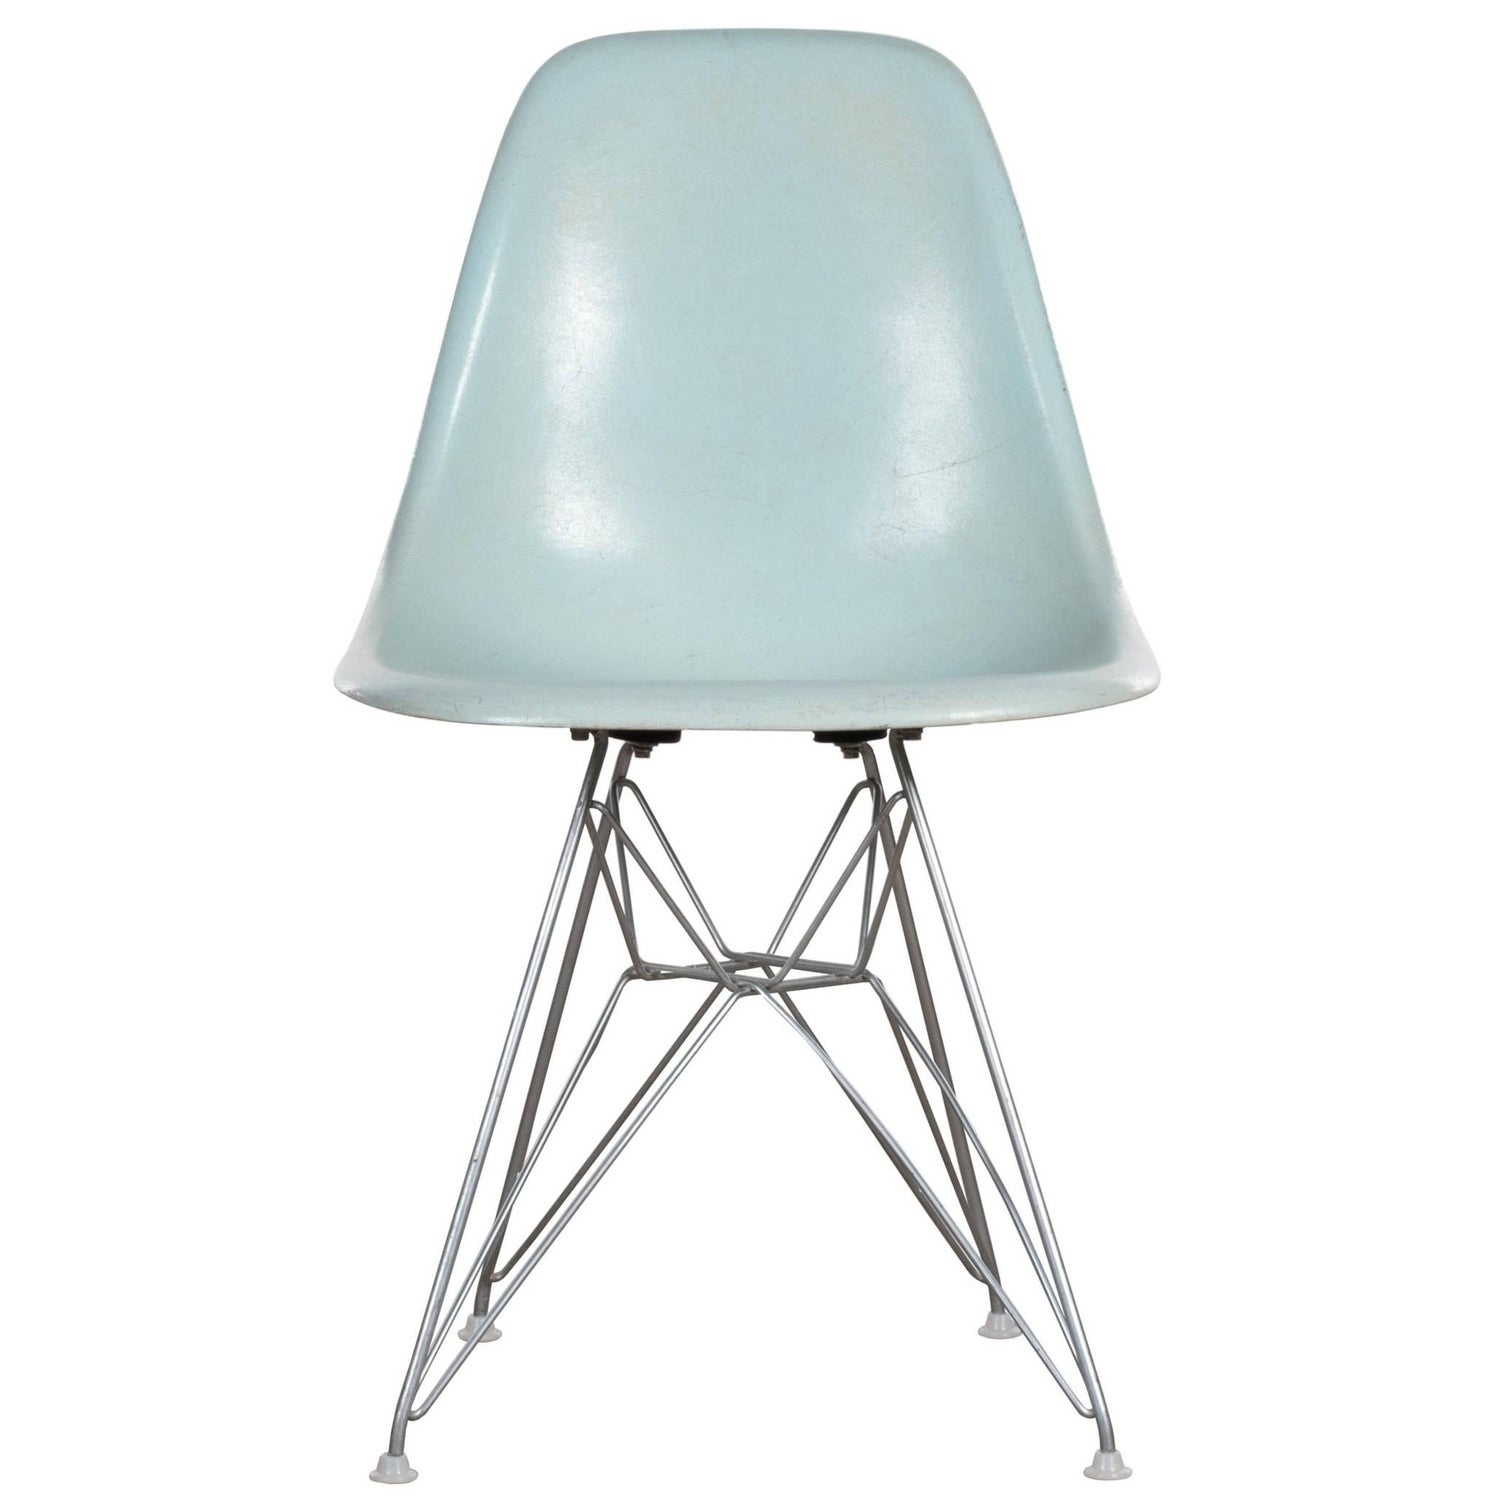 Charles and Ray Eames Dining Room Chairs 74 For Sale at 1stdibs